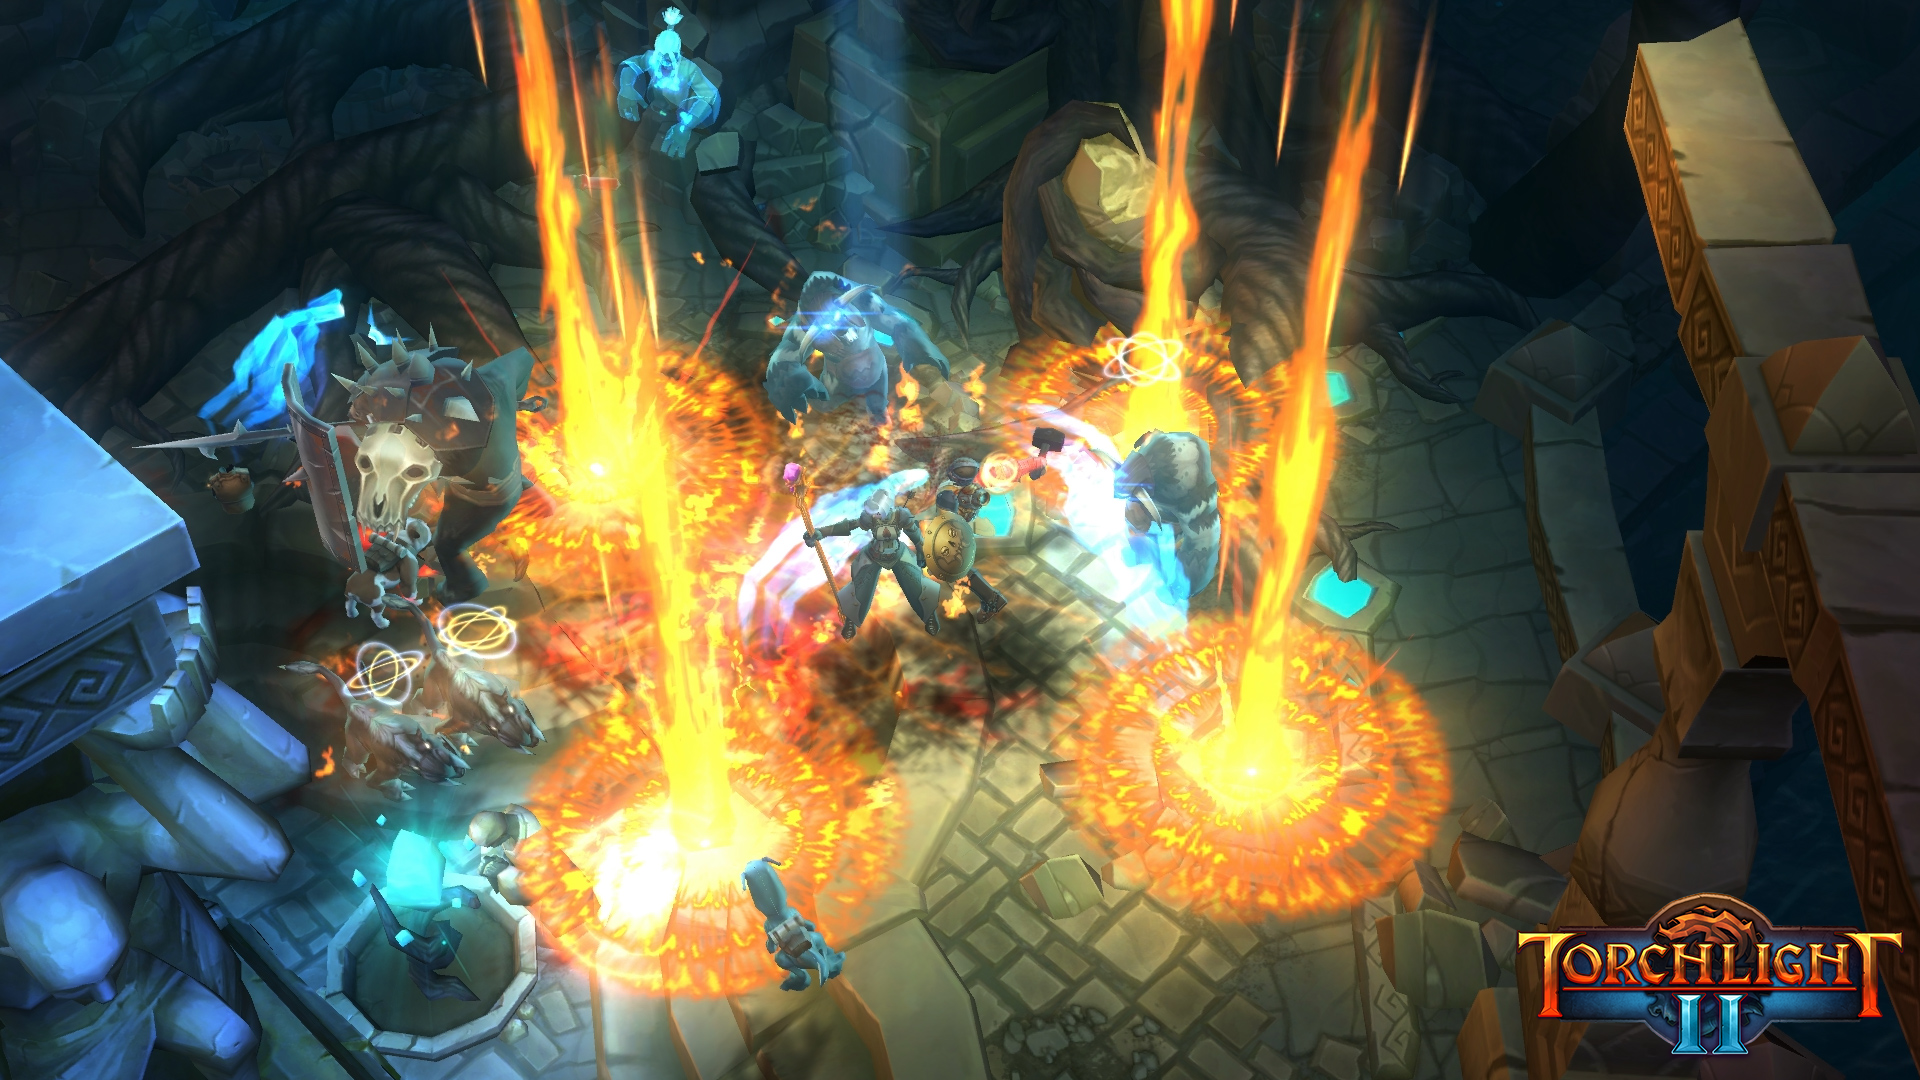 Torchlight II on PS4